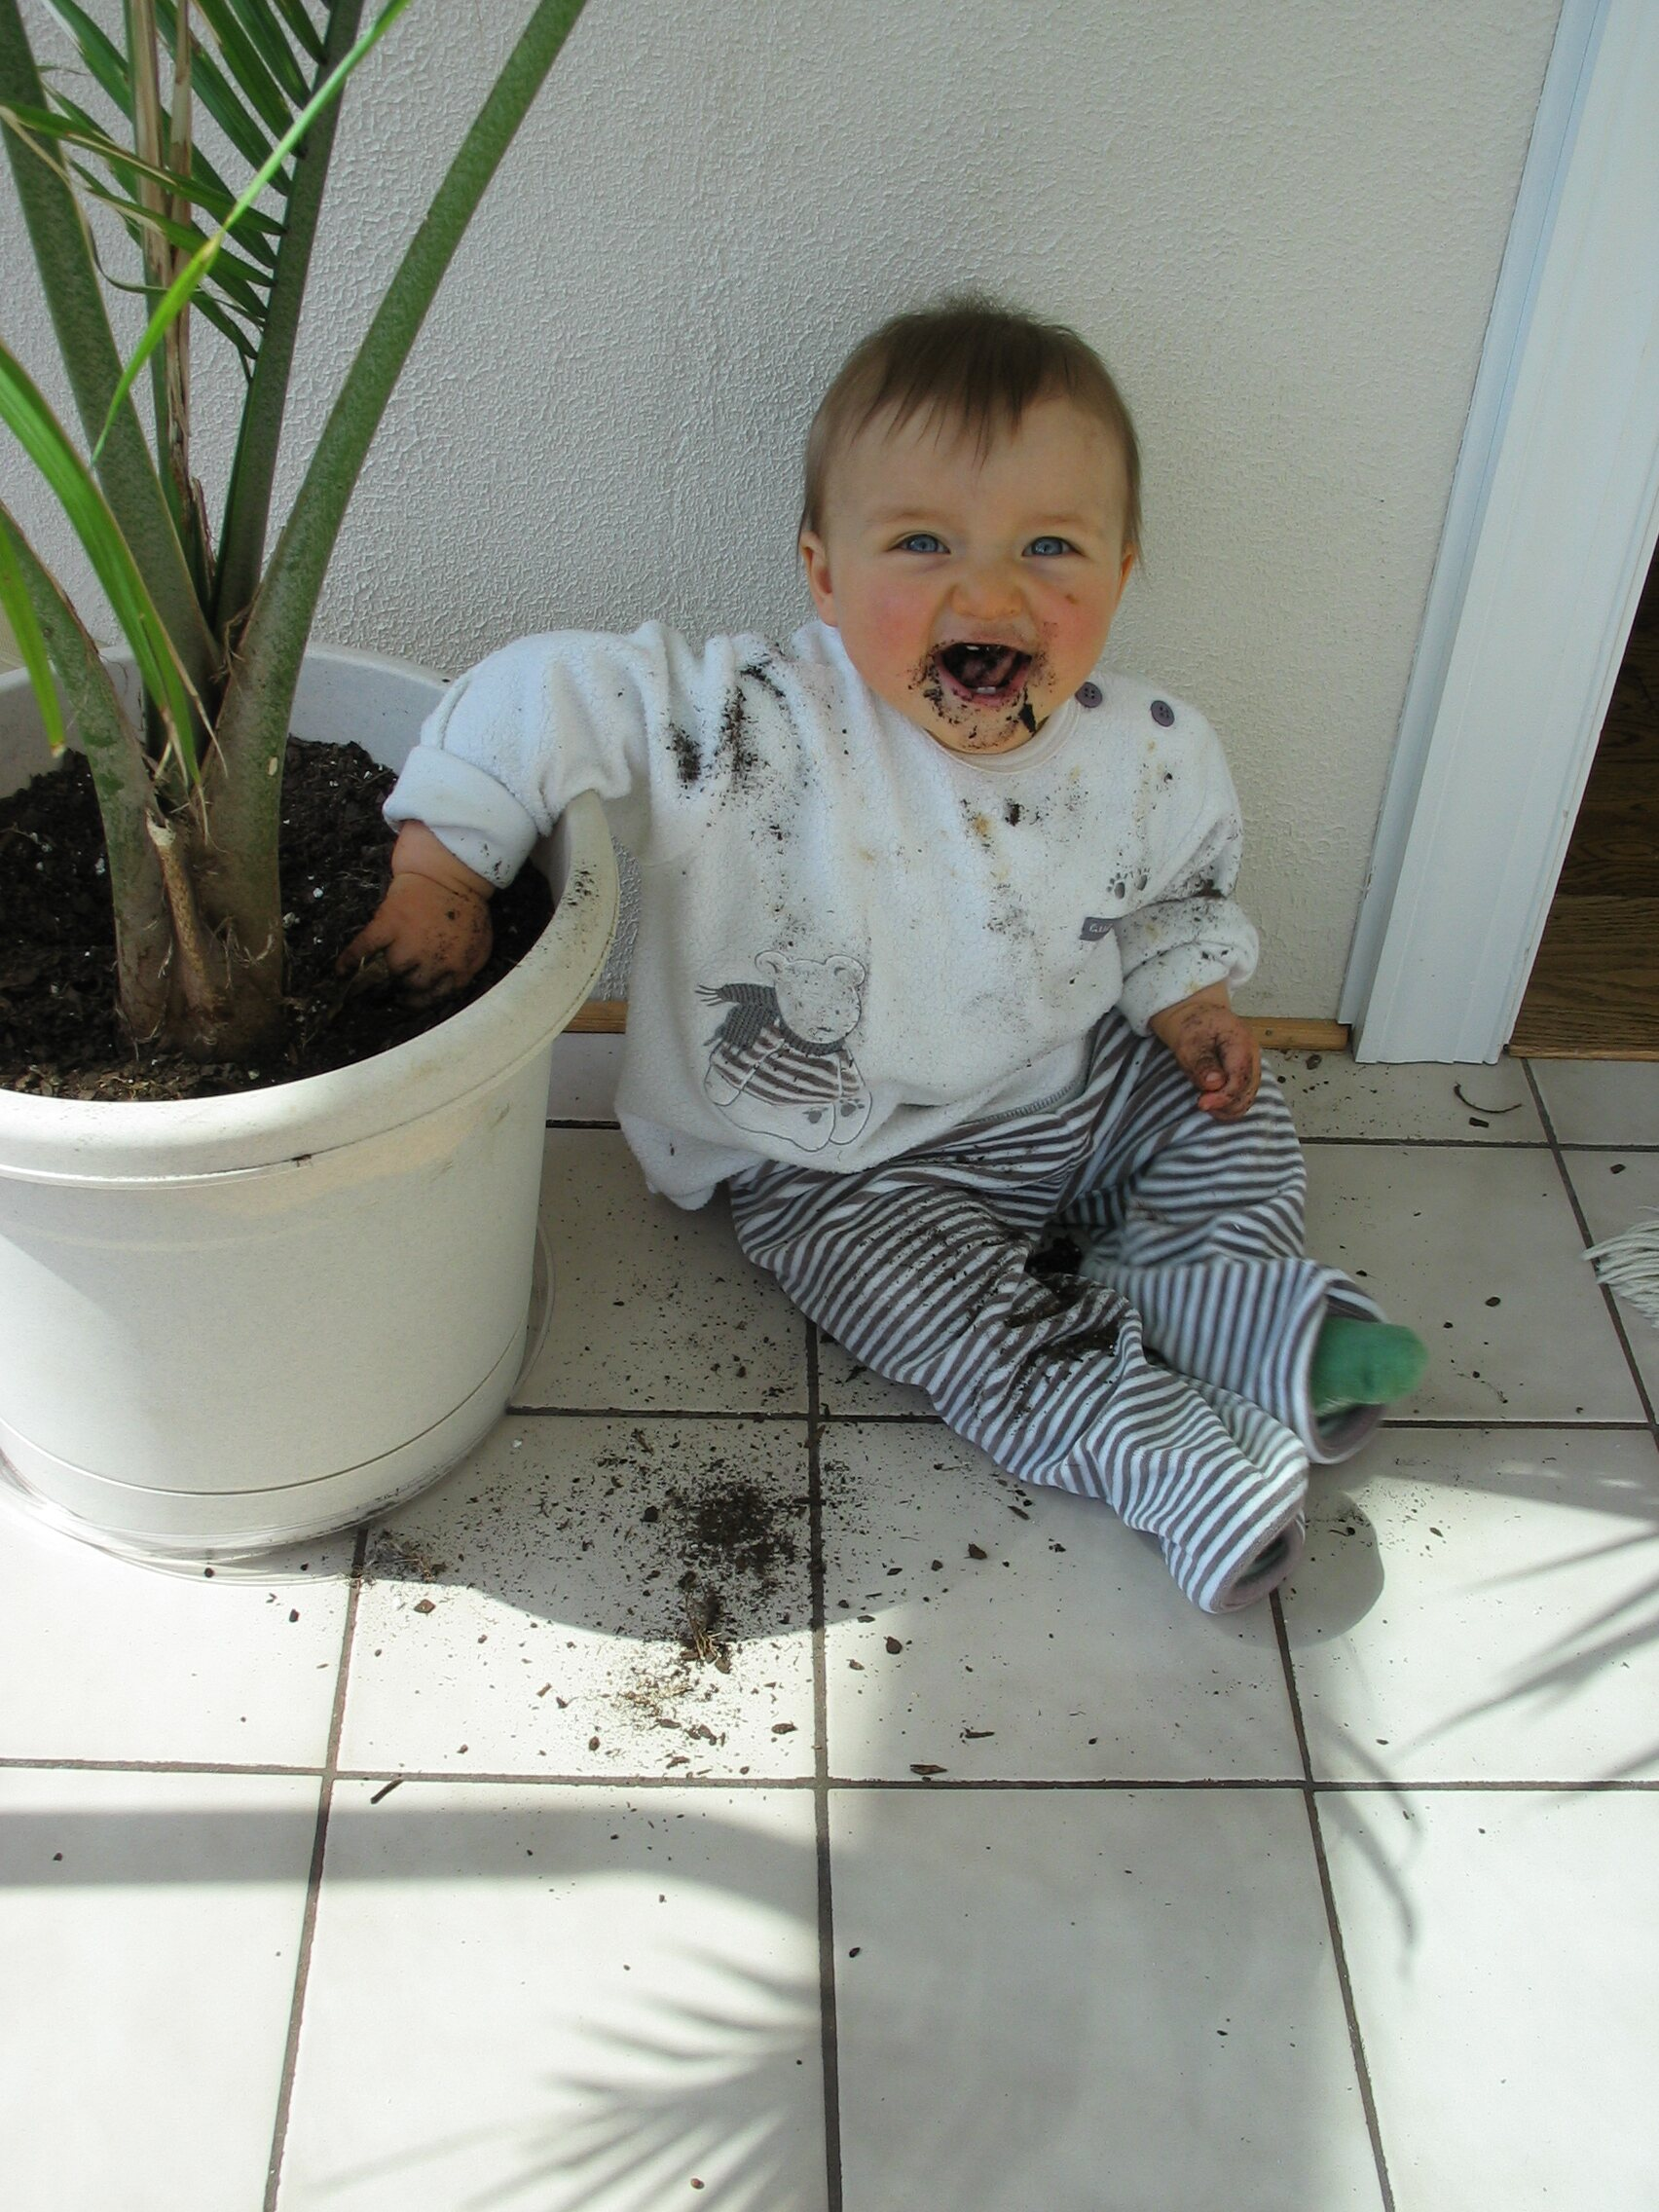 UPS is making grilled cheeses now?